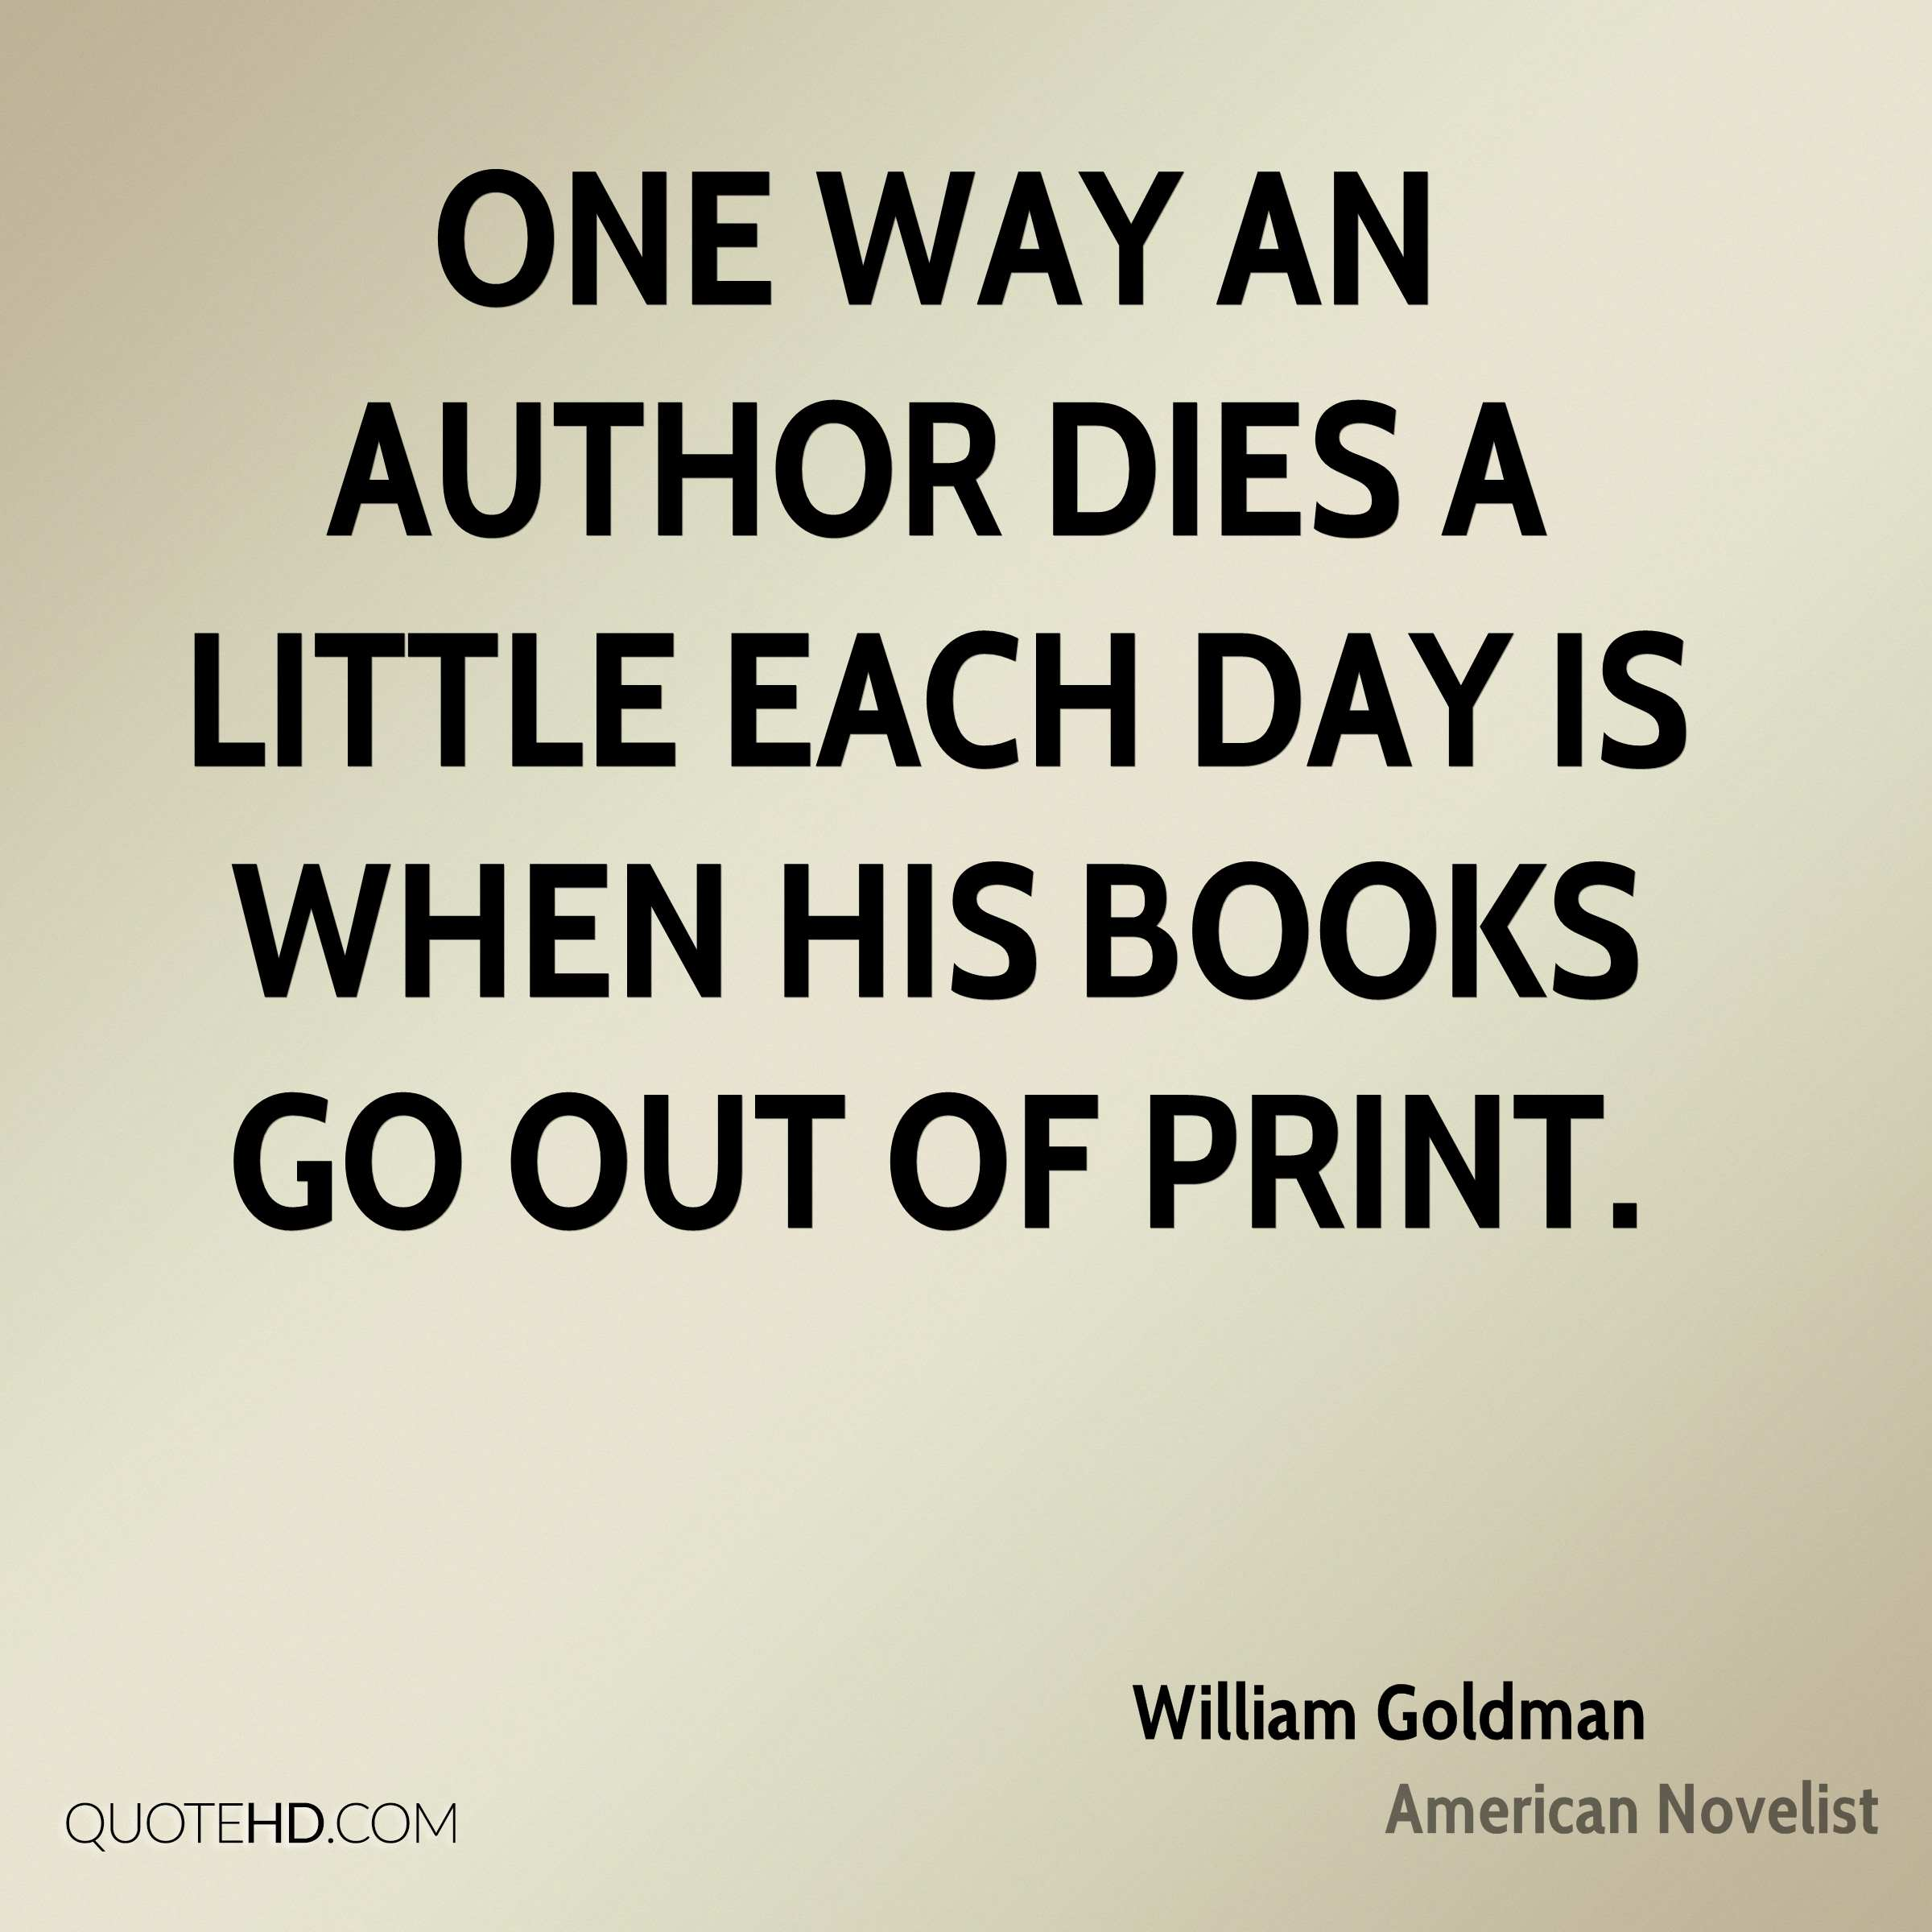 One way an author dies a little each day is when his books go out of print.